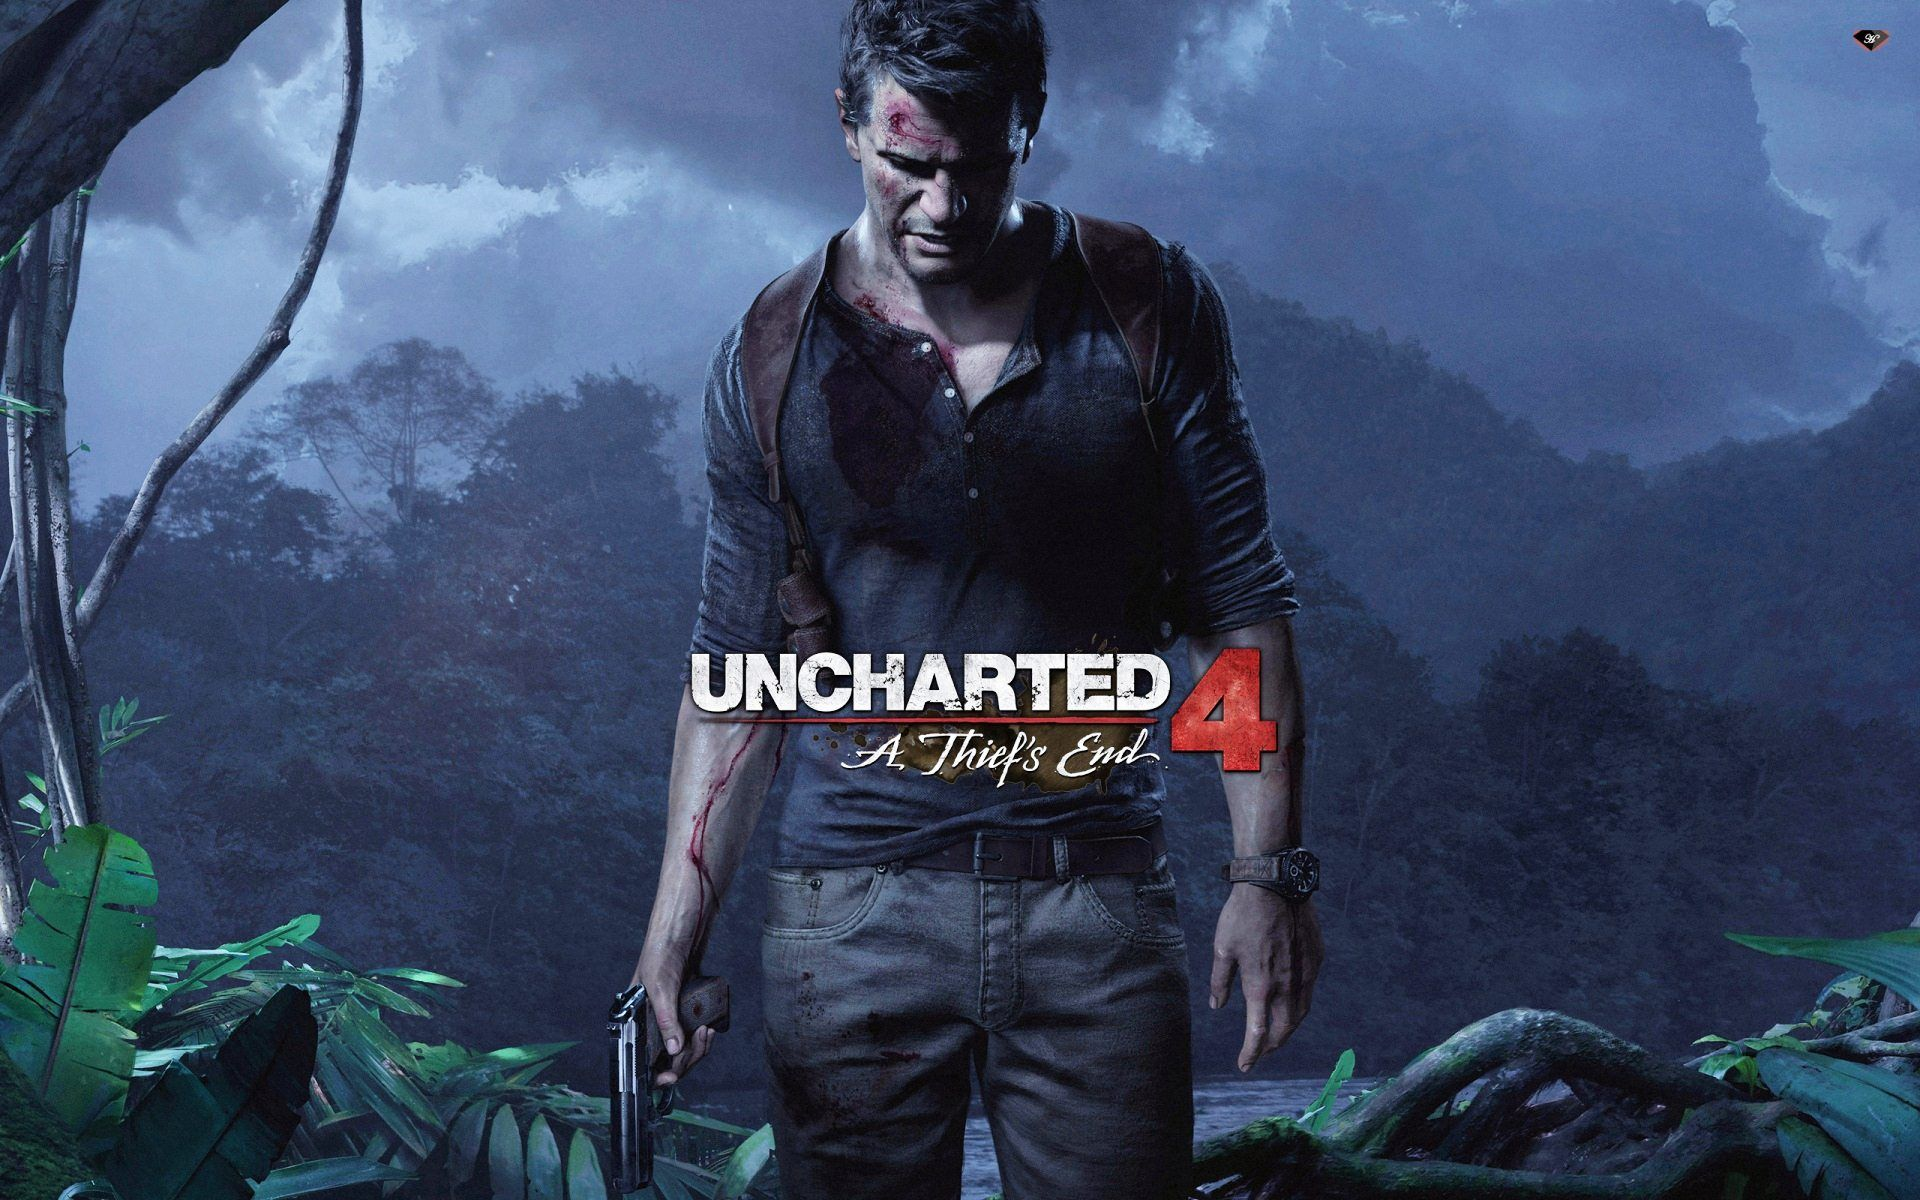 Uncharted 4 Sets The Standard At E3 With Mindblowing Second Uncharted 4 Gameplay Trailer